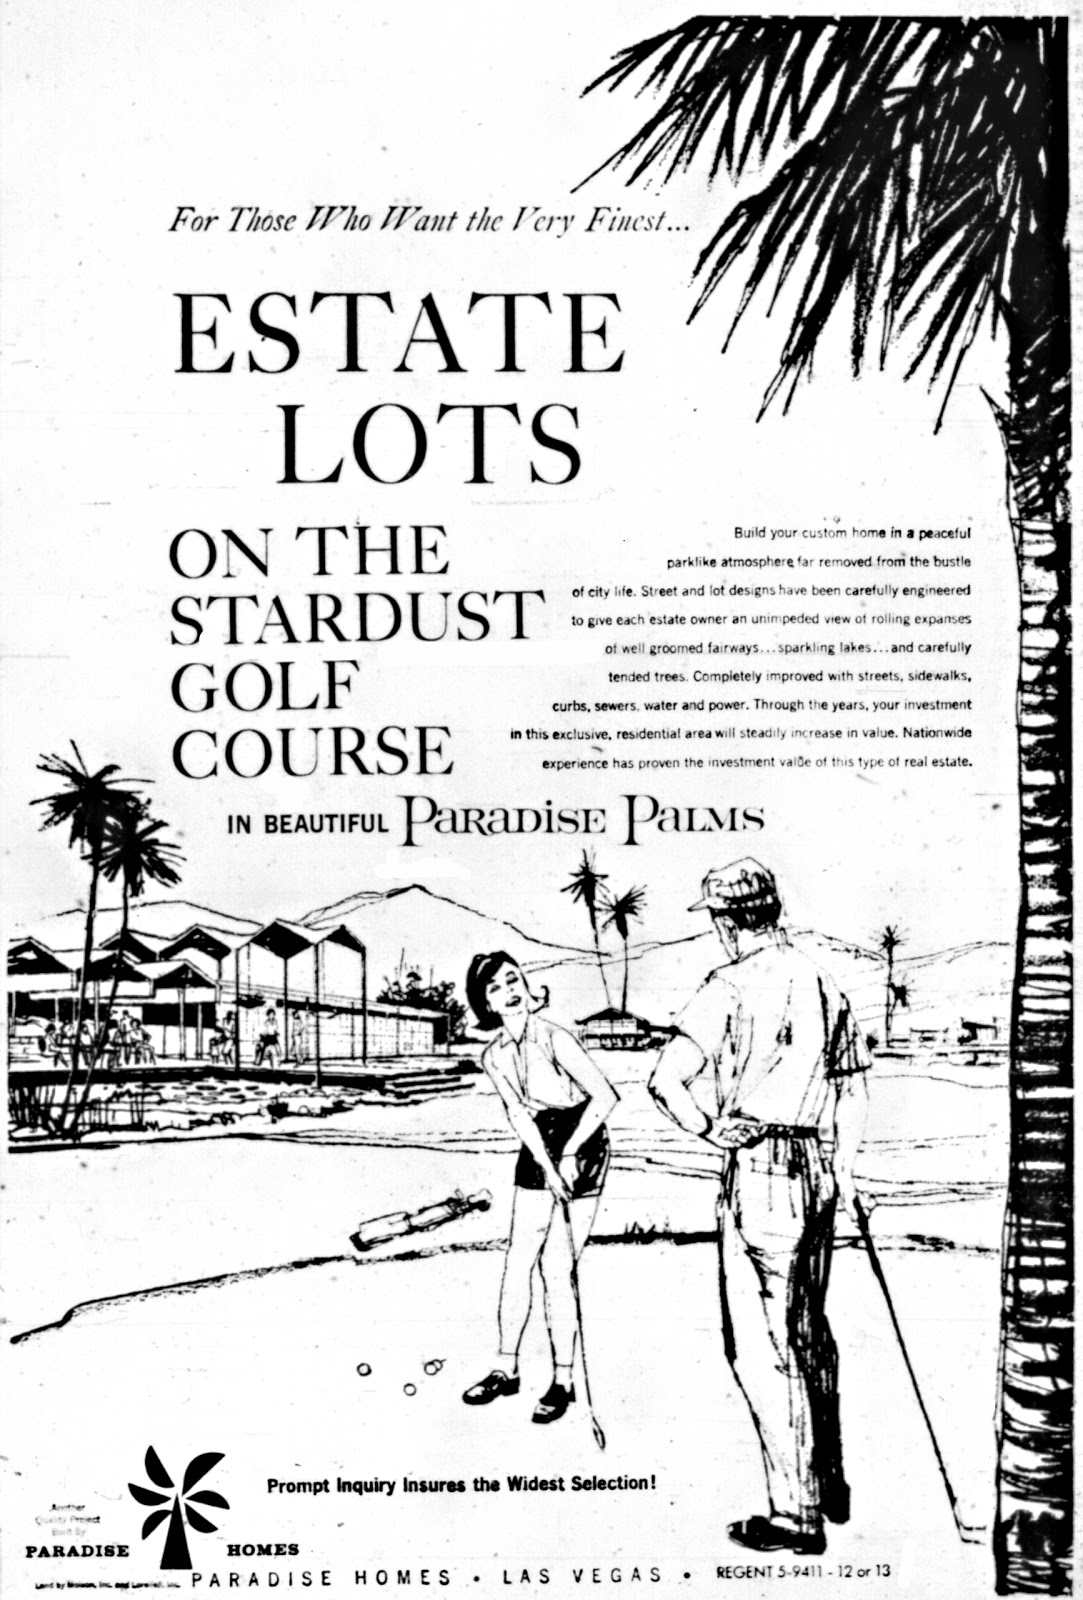 ALP 09UC moreover No Tin Tree Would Be  plete Without as well Newspaper Ad For Paradise Palms 1251961 furthermore ALP 09UC besides House Plans For Parents. on updated mid century modern home plans